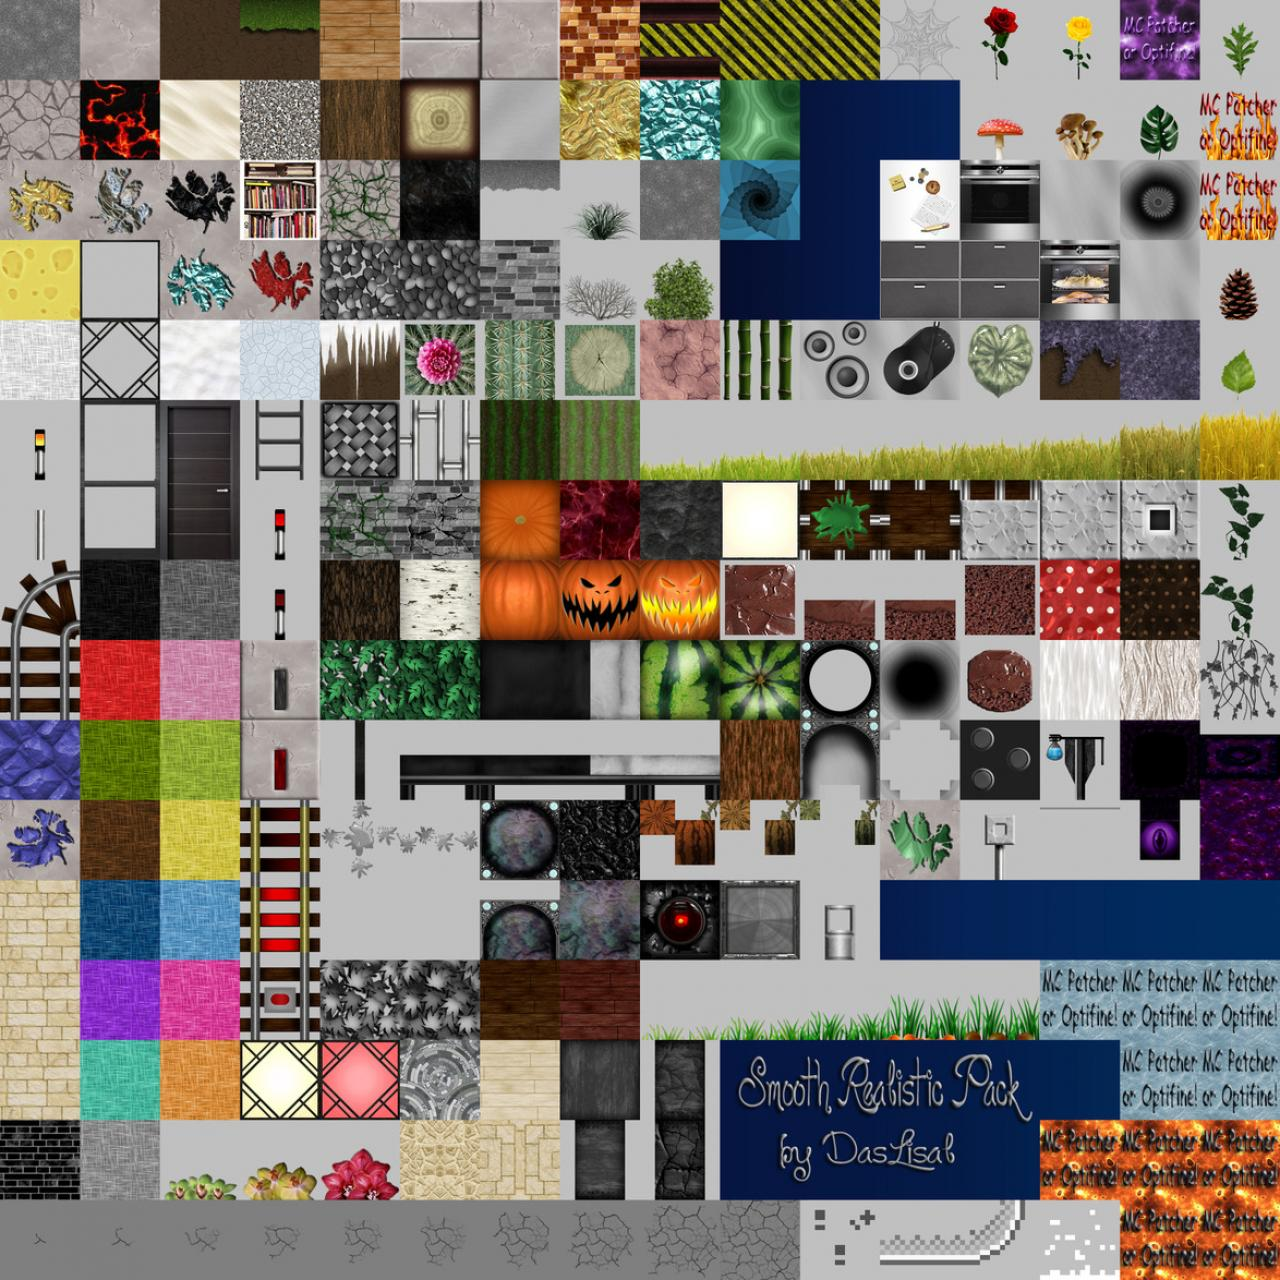 http://img.9minecraft.net/TexturePack1/Smooth-Realistic-Texture-Pack-1.jpg